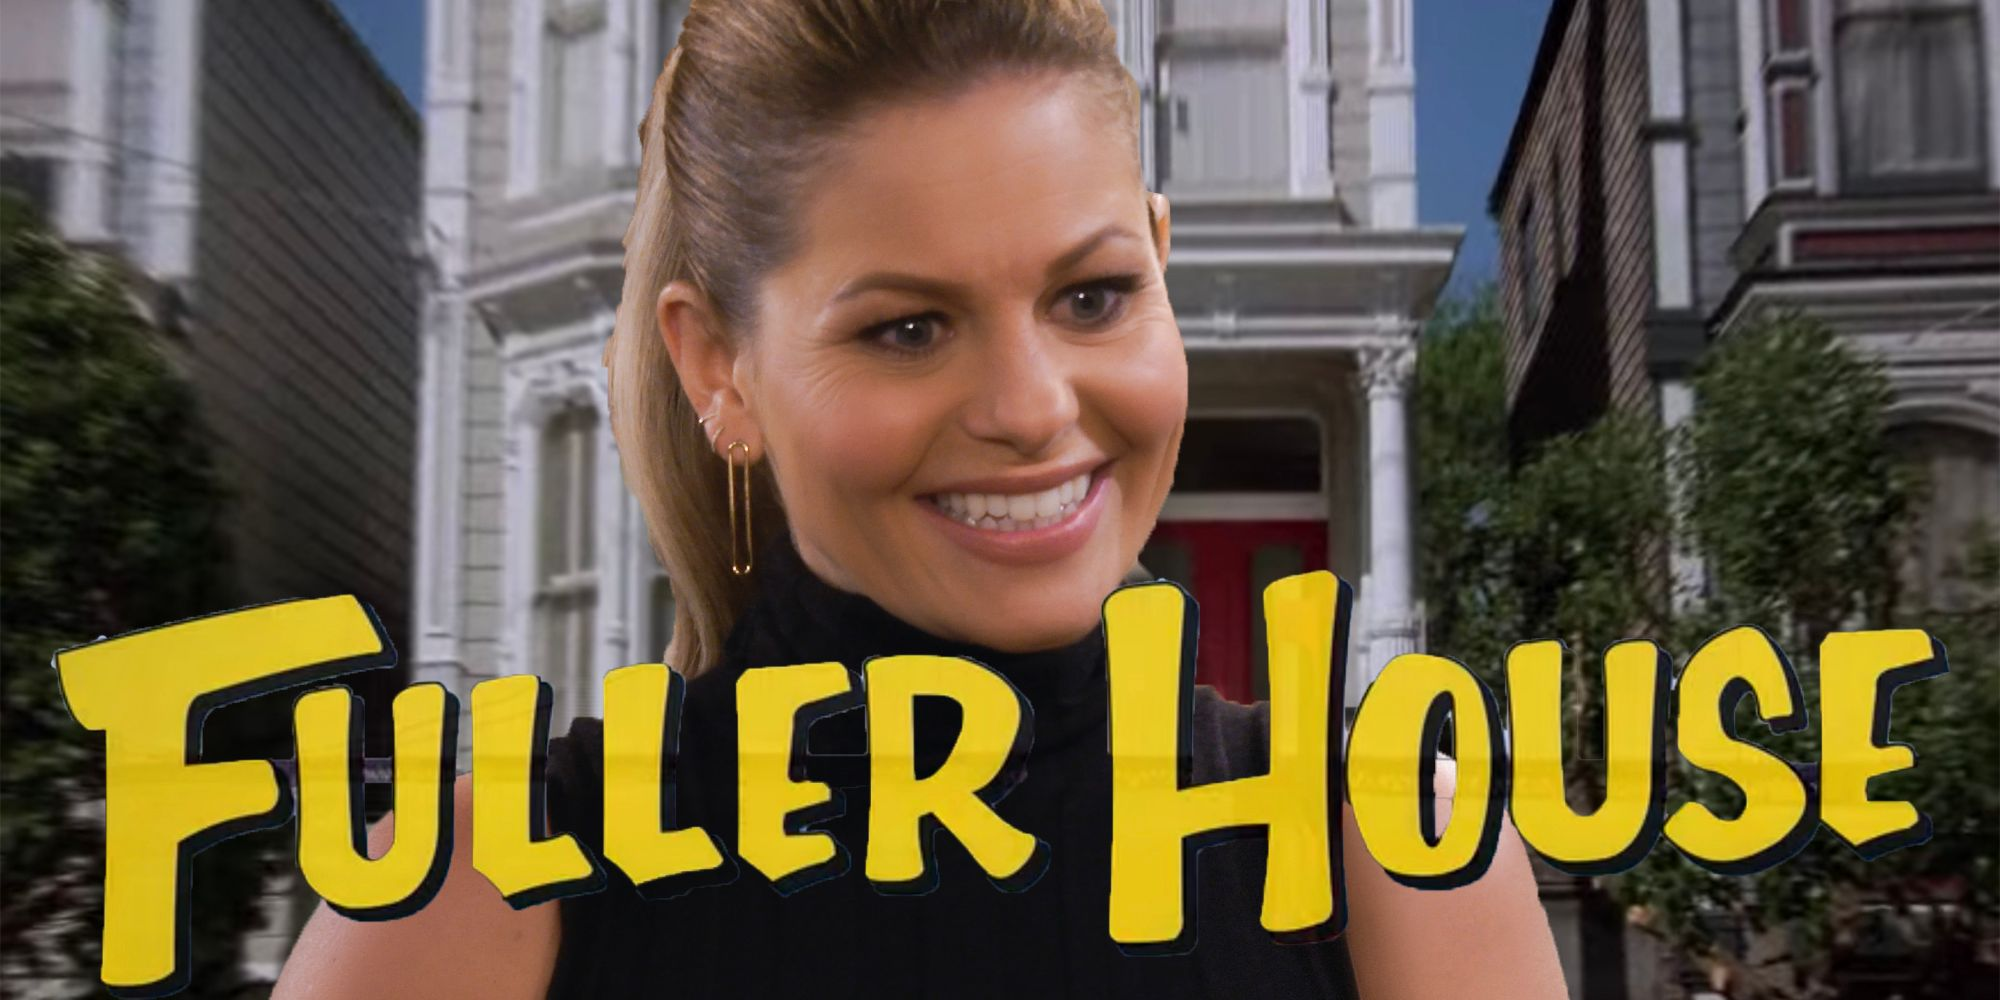 Fuller House Title Explained: How The Netflix Show Got Its Name